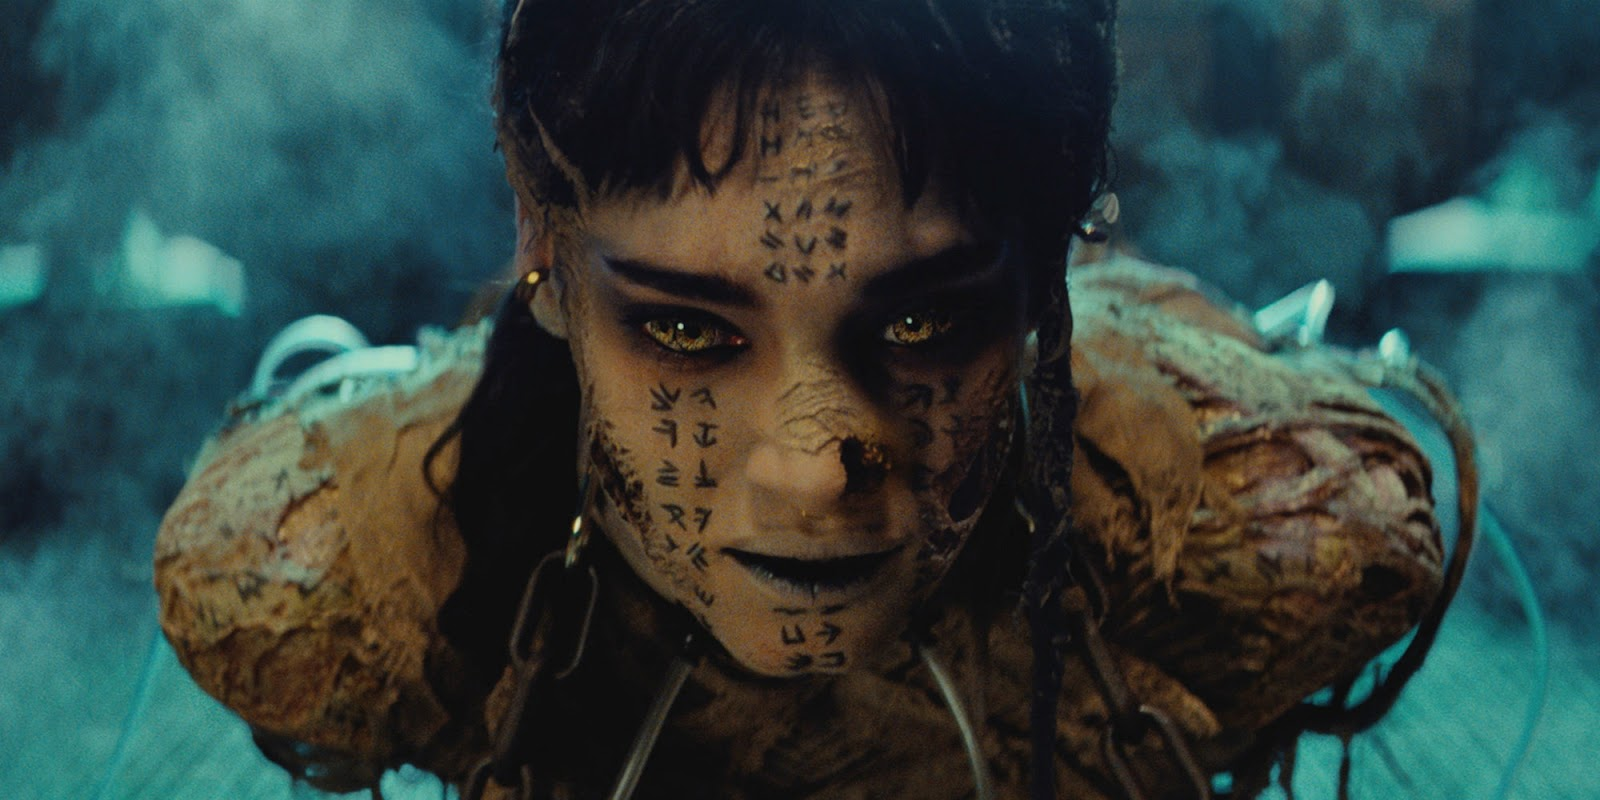 MOVIES: The Mummy - Review